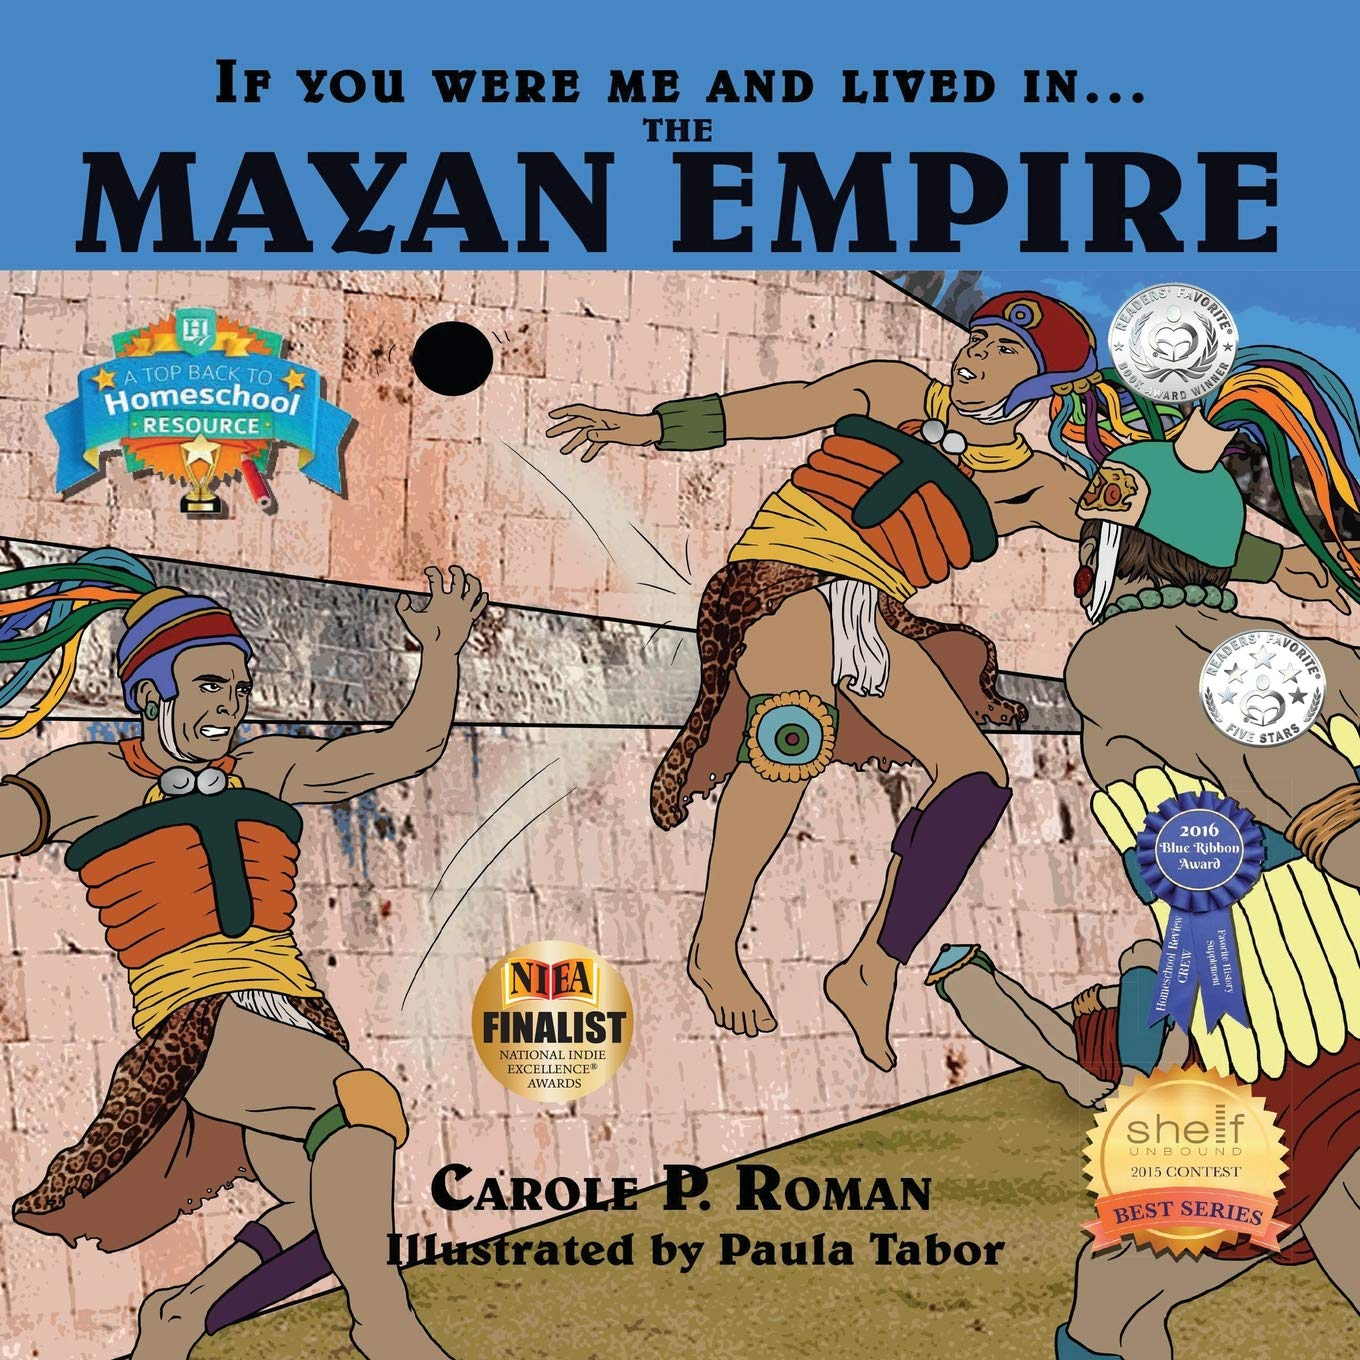 If You Were Me and Lived In... the Mayan Empire: An Introduction to Civilizations Throughout Time (If You Were Me and Lived In...Historical)